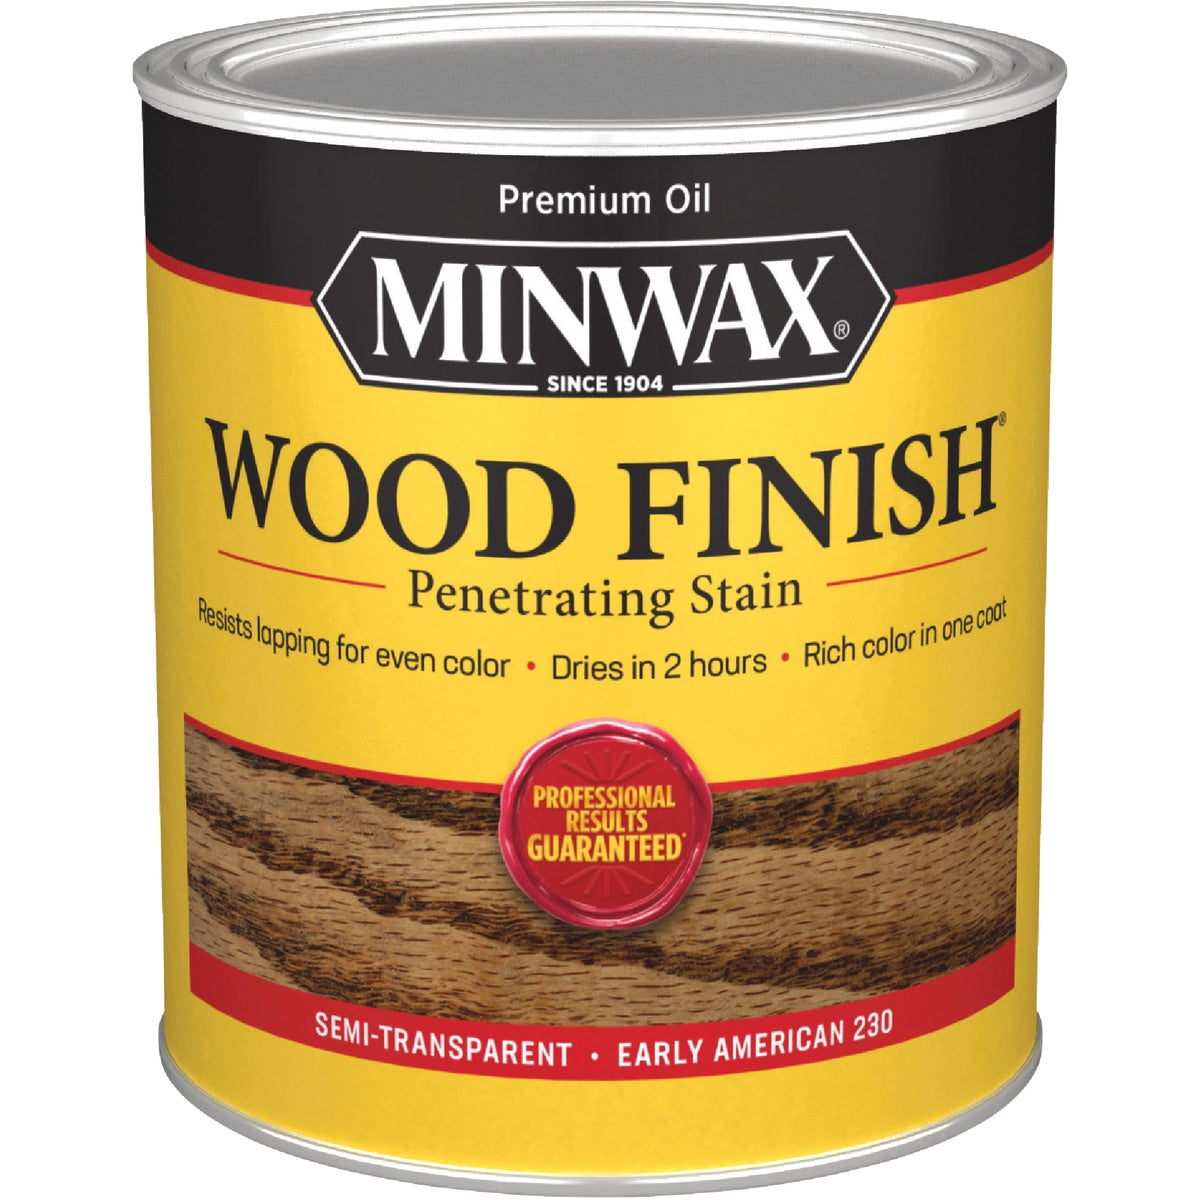 Minwax 70008 1 Quart Wood Finish Interior Wood Stain, Early American